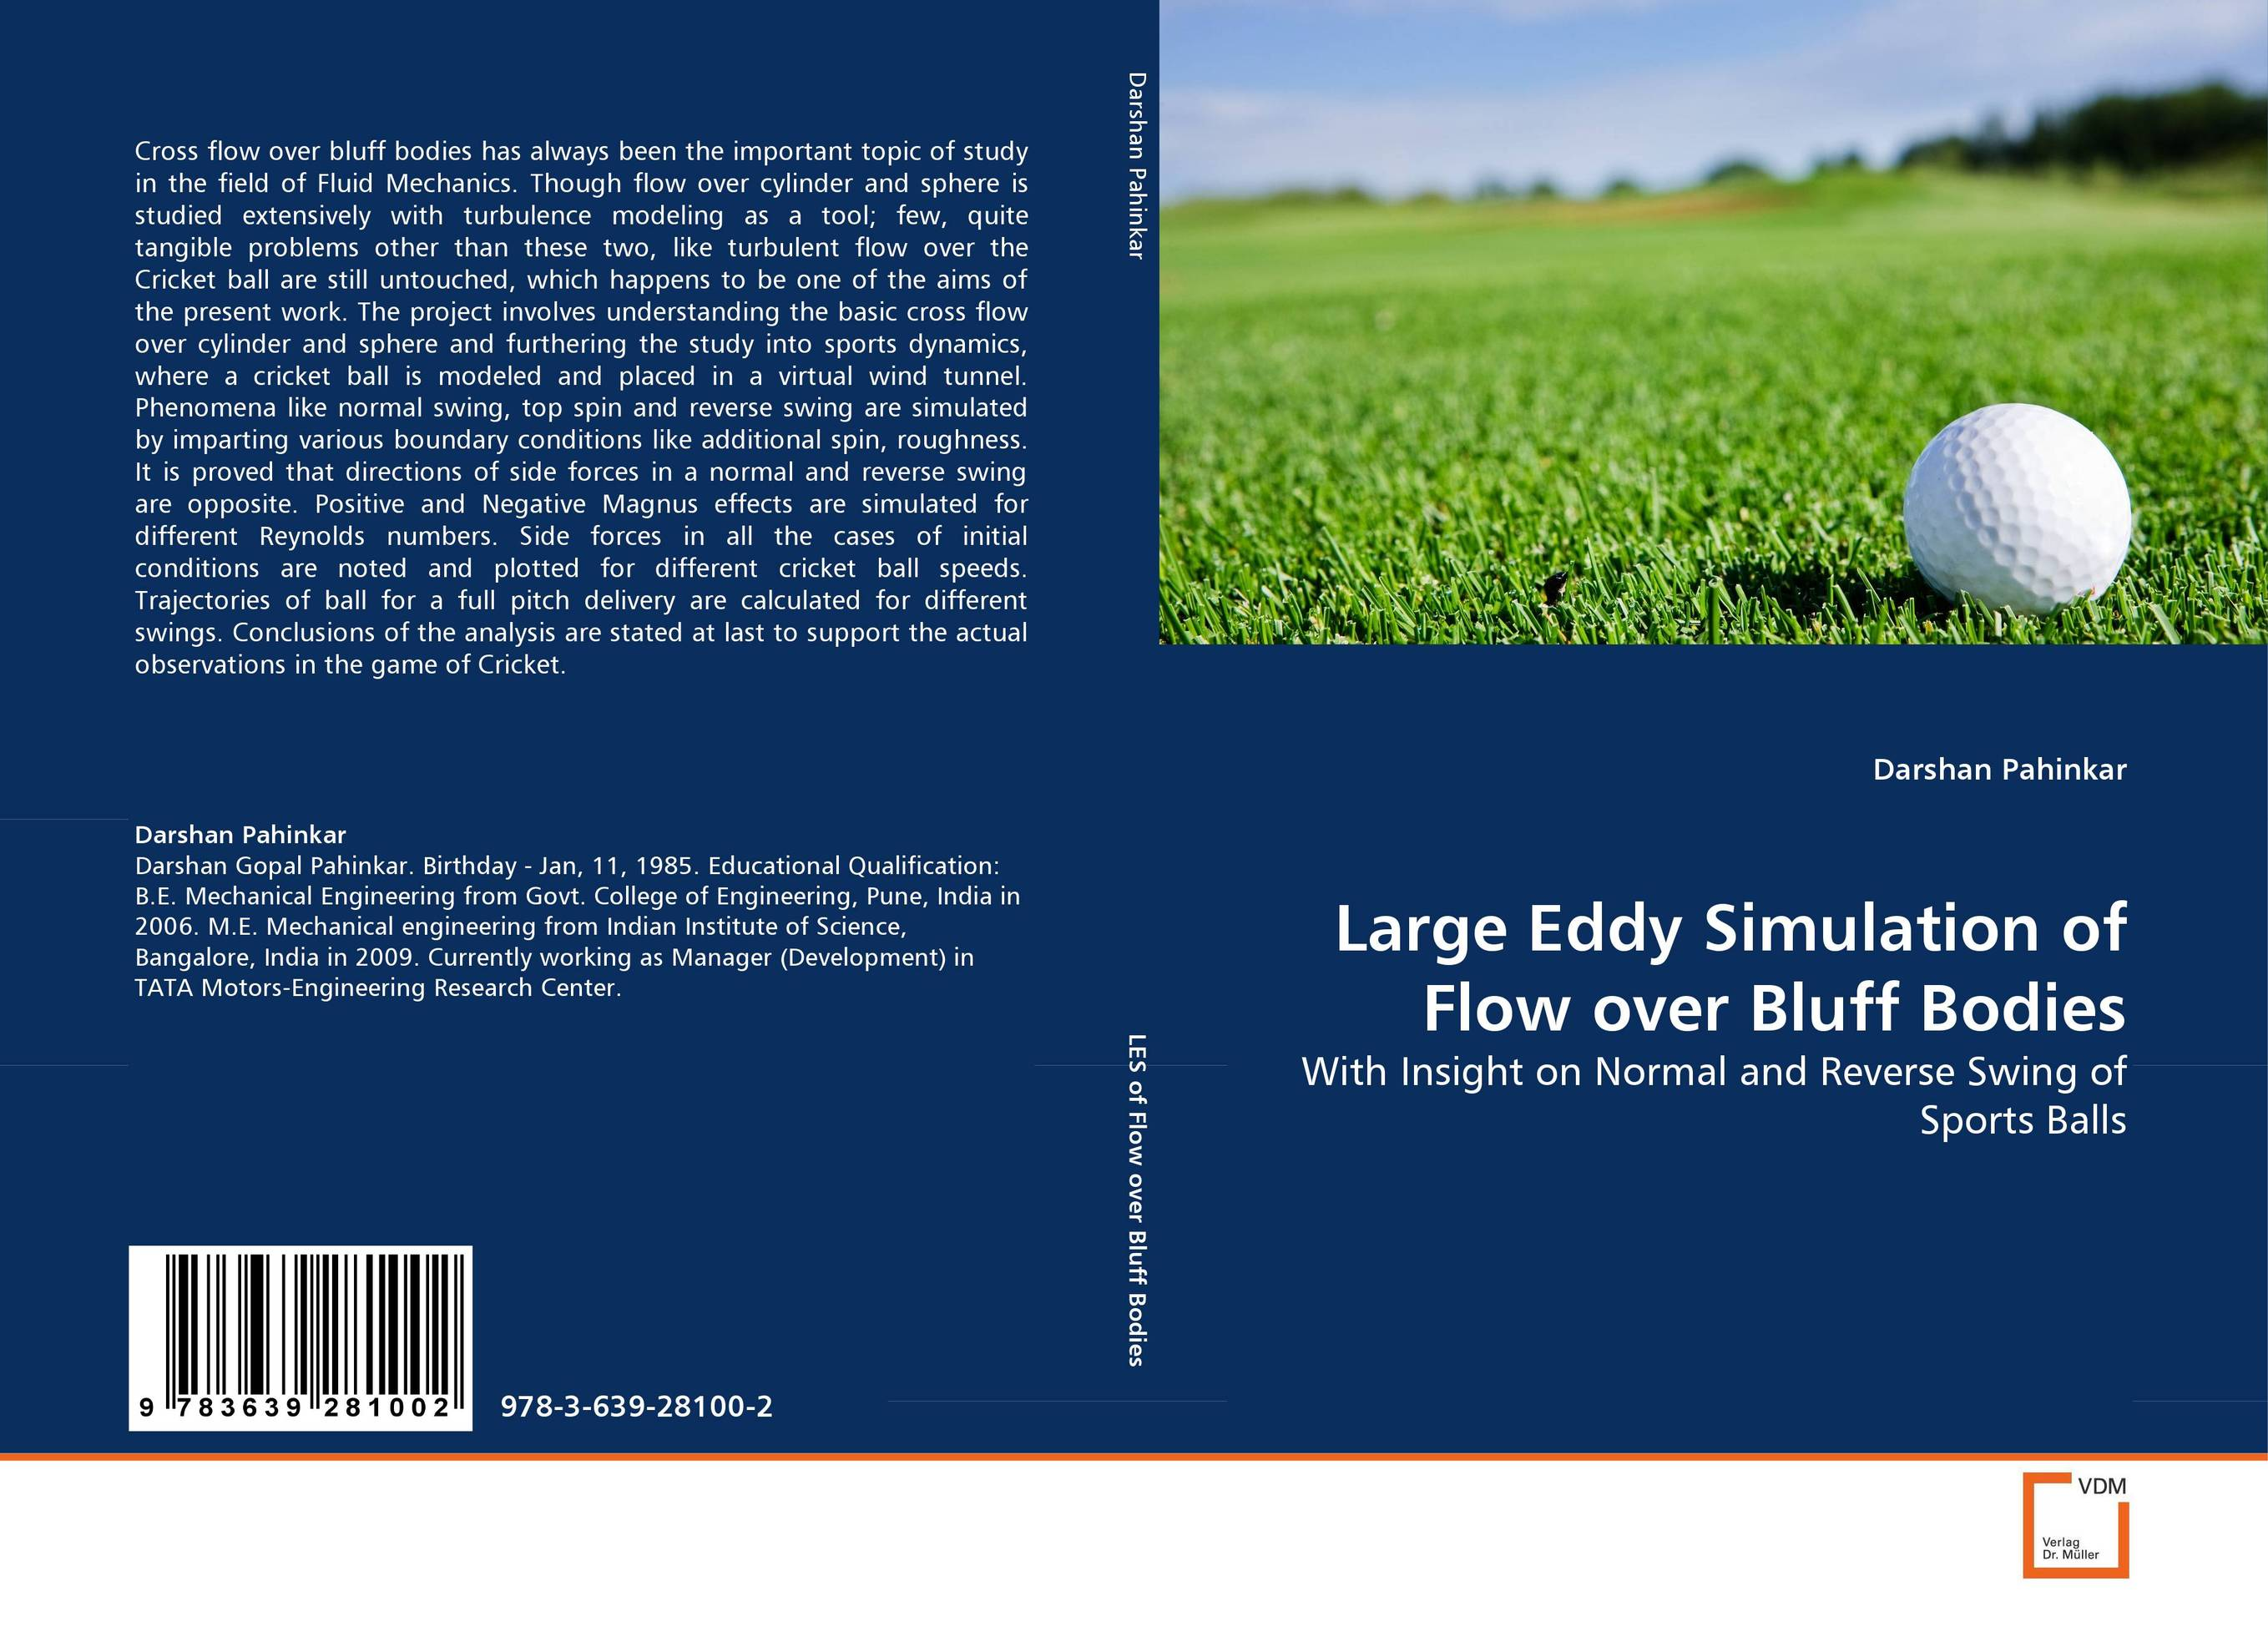 Large Eddy Simulation of Flow over Bluff Bodies the other side of silence